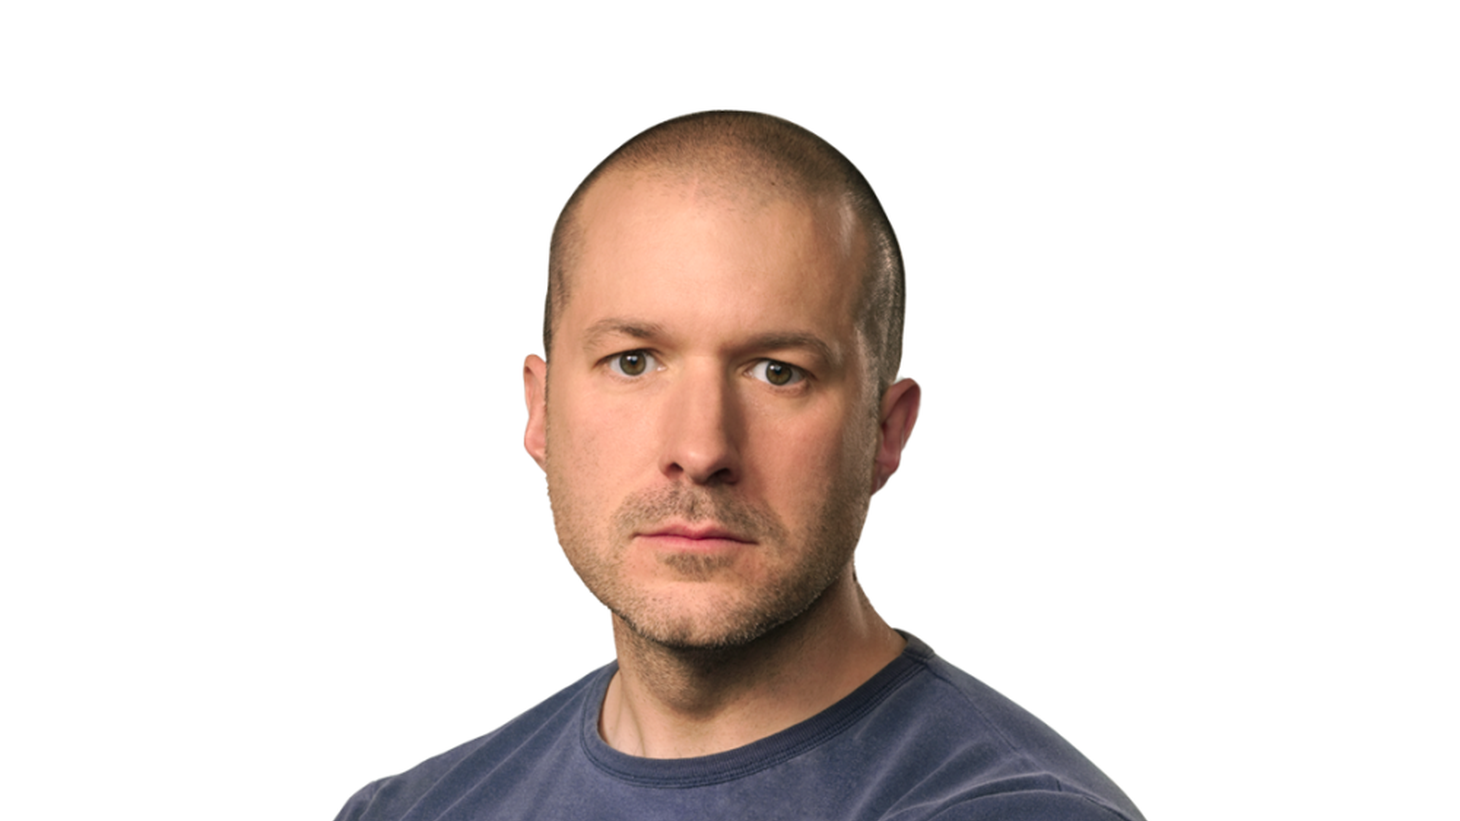 Apple's chief design officer Jony Ive is leaving the company.